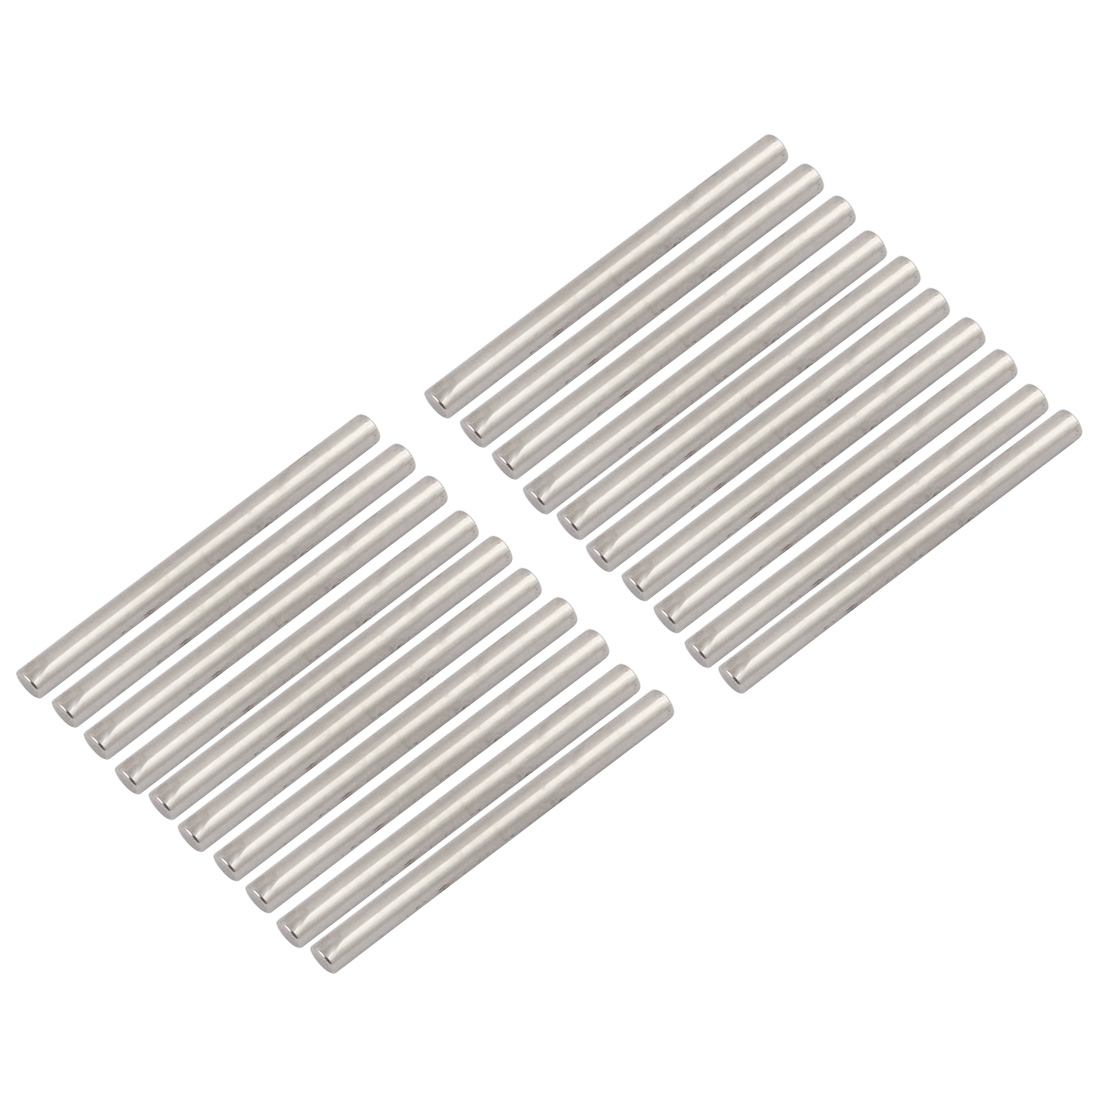 20Pcs Round Shaft Rods Axles 304 Stainless Steel 3mm x 40mm for RC Car